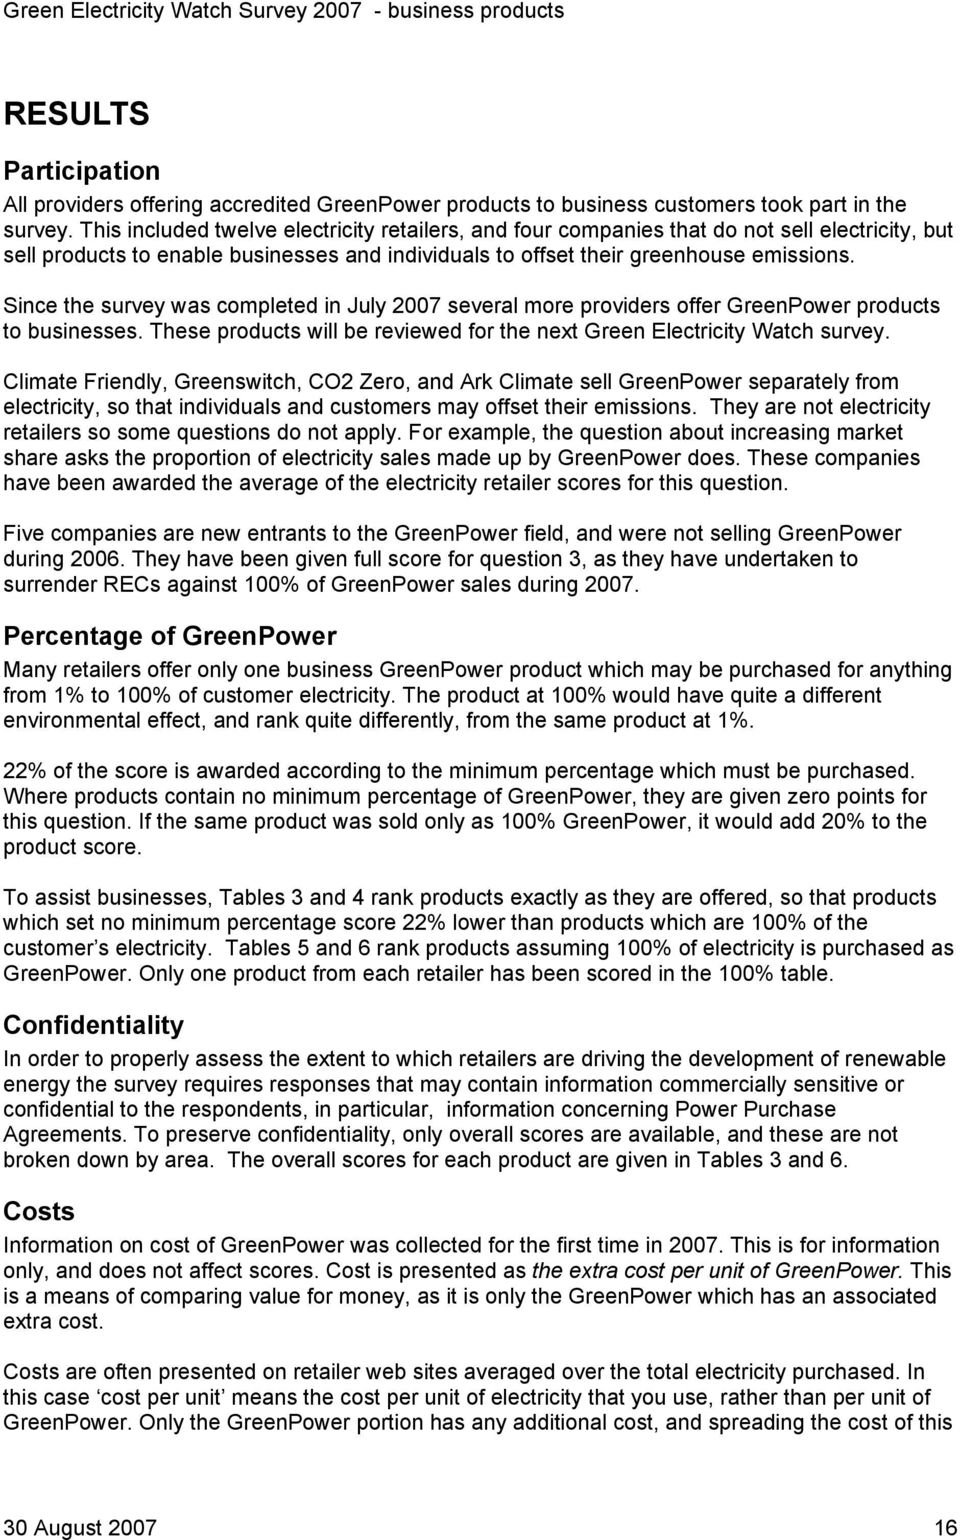 Since the survey was completed in July 2007 several more providers offer GreenPower products to businesses. These products will be reviewed for the next Green Electricity Watch survey.